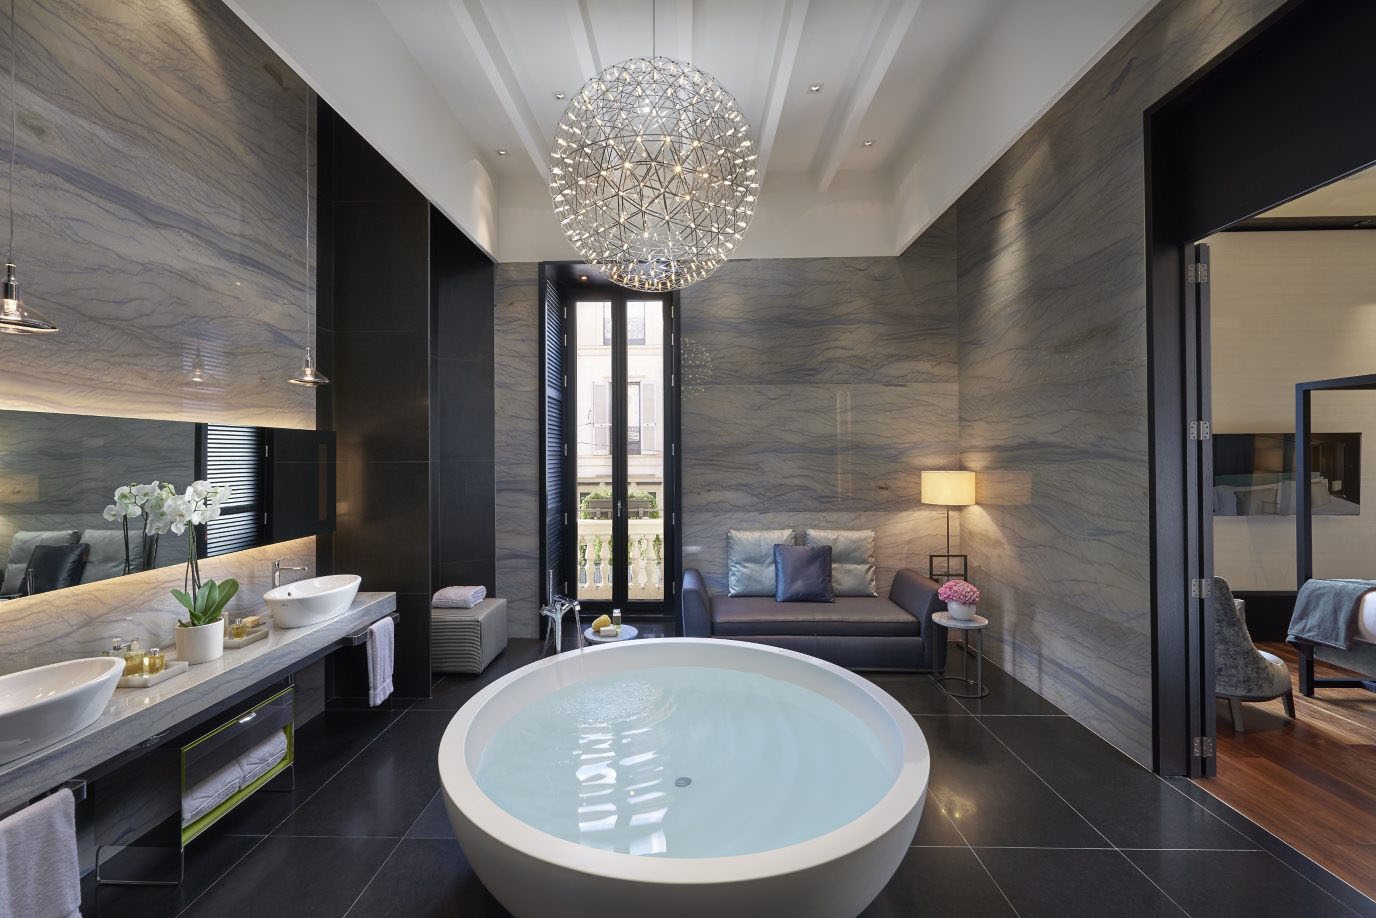 Mandarin oriental milan hotel timeless luxury with chic - Hotel interior and exterior design ...